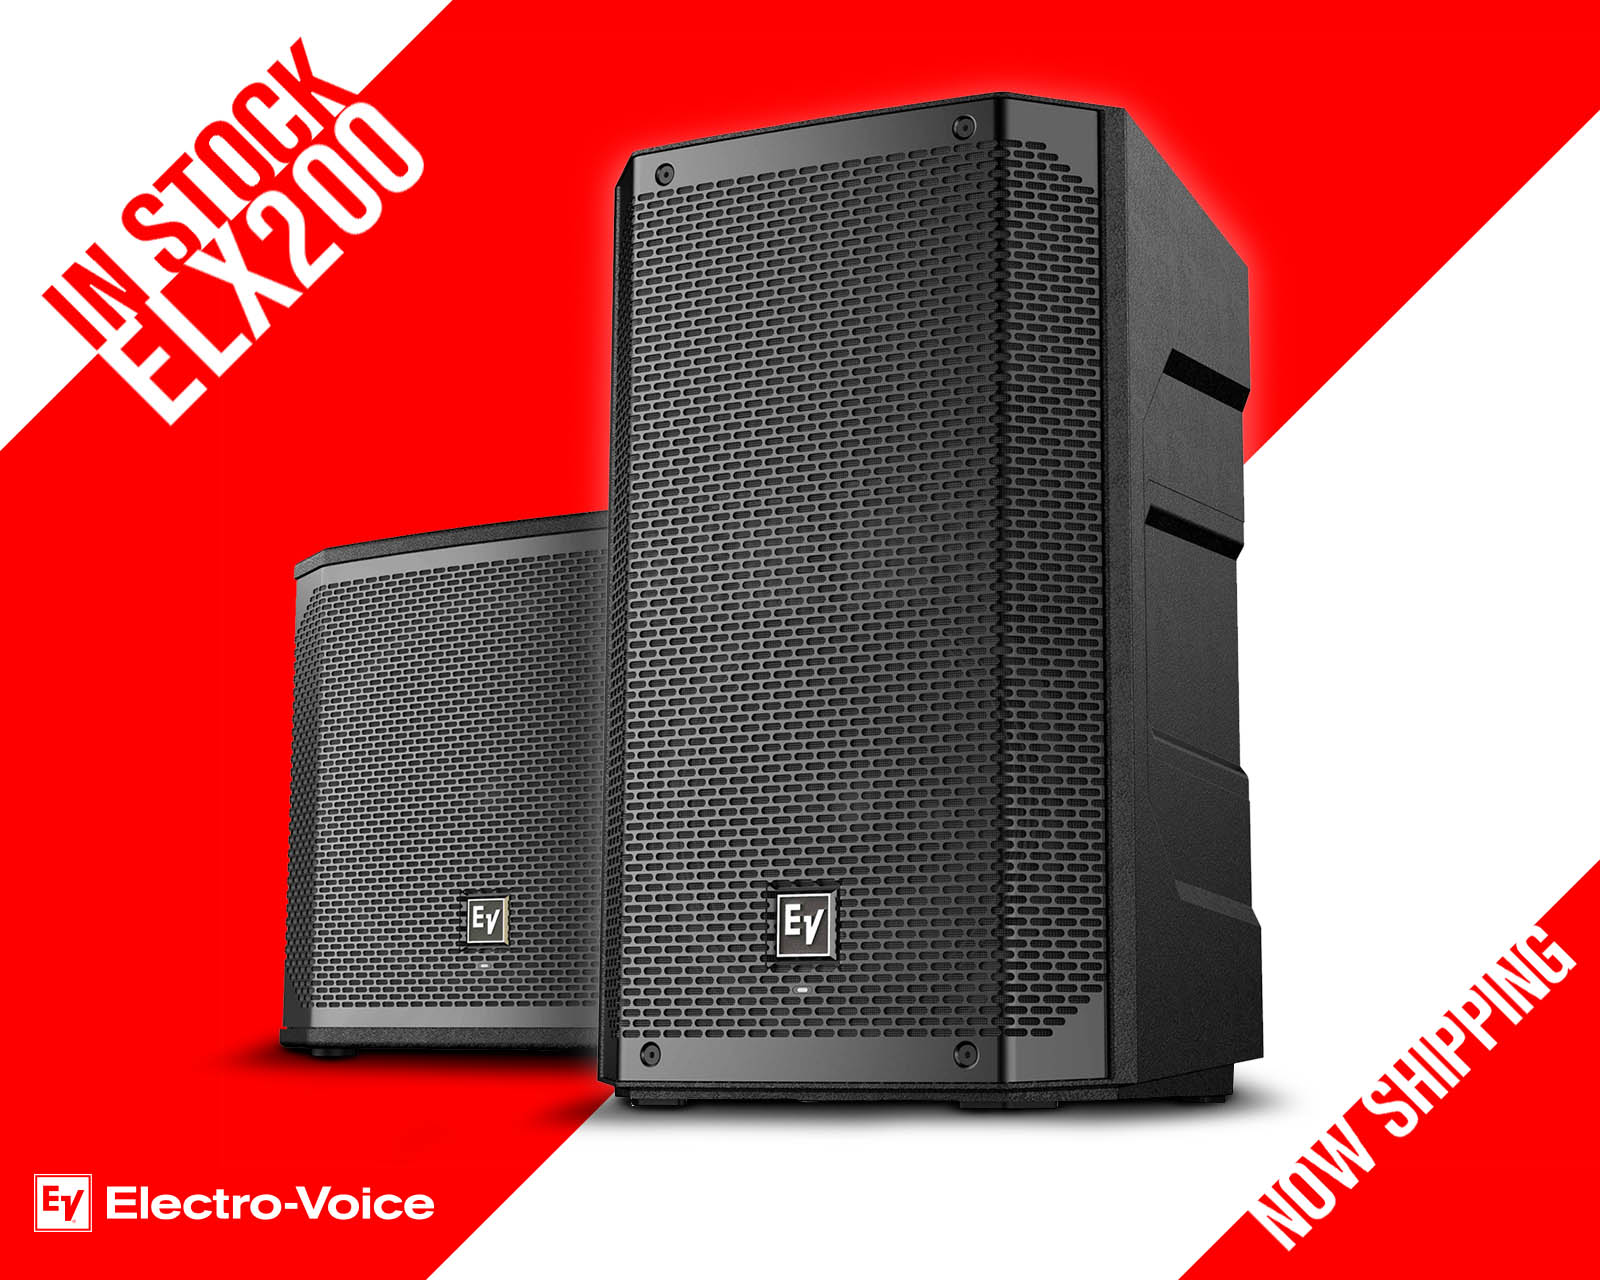 NOW IN STOCK - NEW ELX200 PORTABLE LOUDSPEAKER SERIES FROM ELECTRO-VOICE